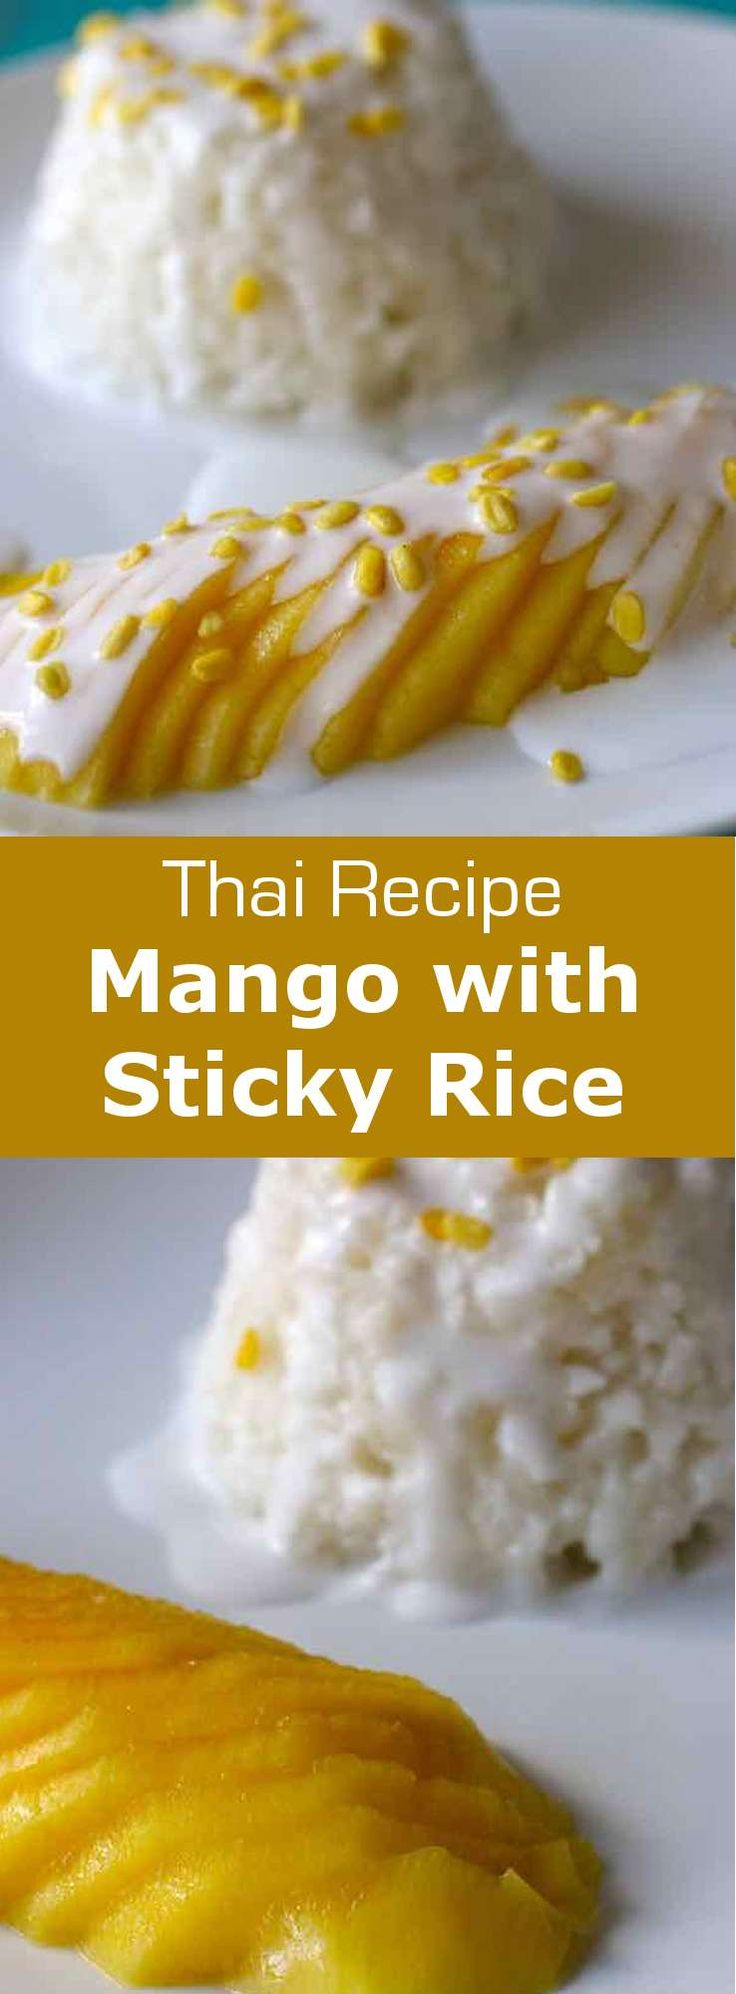 Mango with sticky rice is a delicious Thai dessert prepared with glutinous rice, mango and coconut milk, and that is topped with crunchy toasted mung beans.